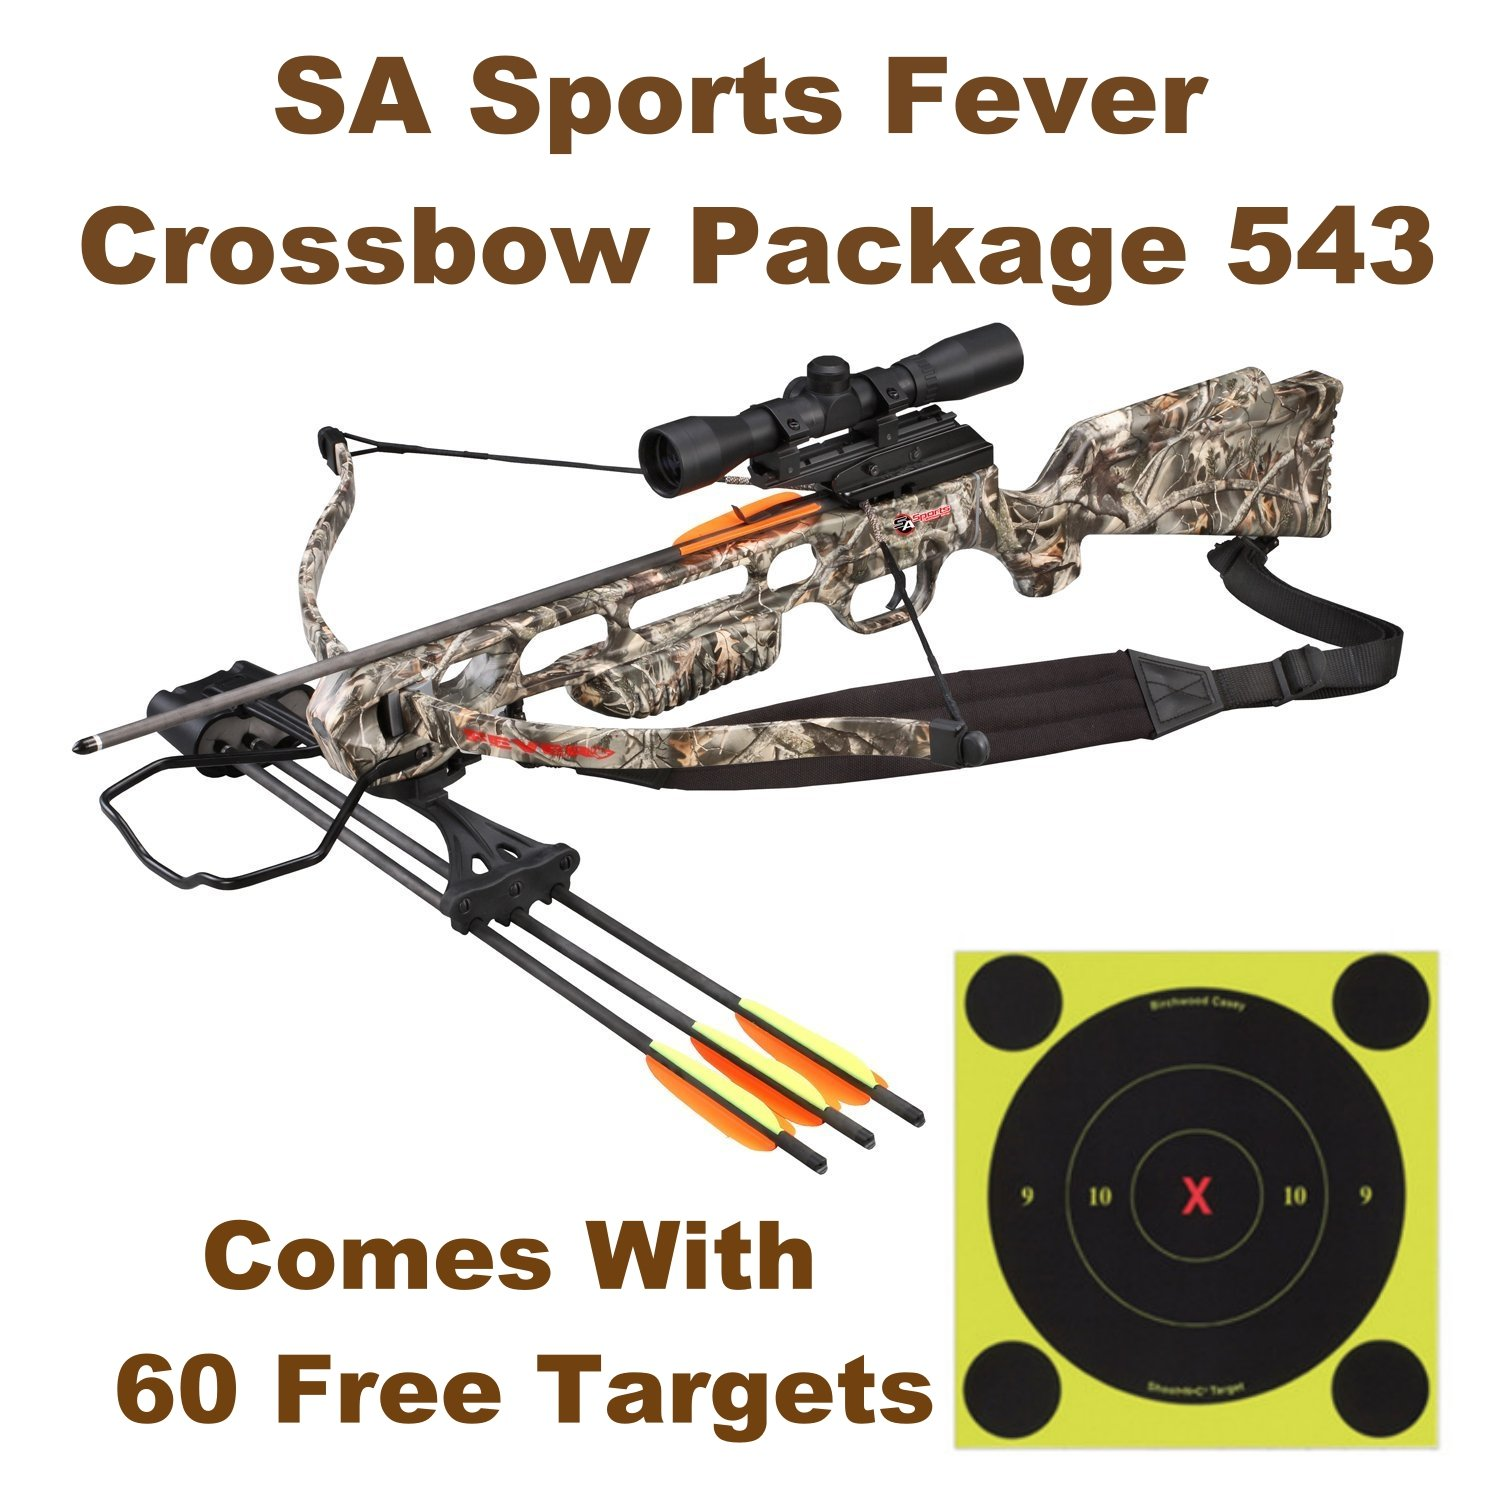 NEW SA Sports Fever Crossbow Package Perfect For Your Zombie Apocalypse Kit Comes With 60 Free Targets